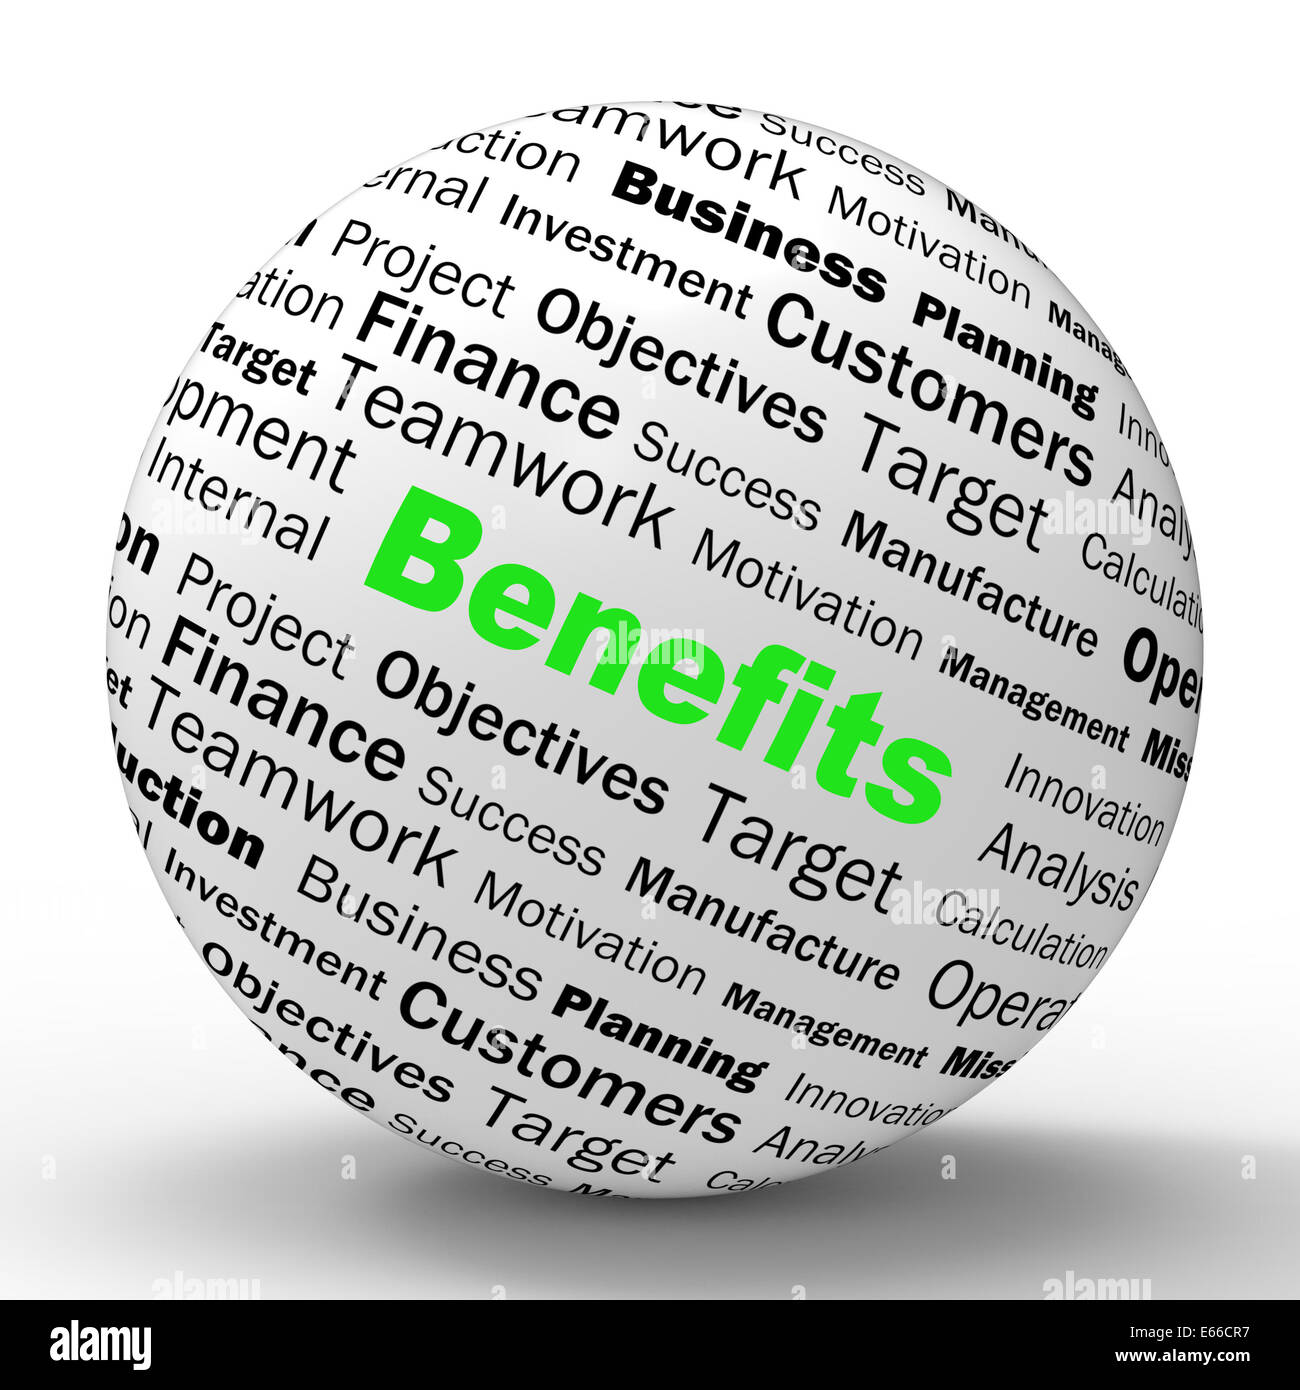 benefits sphere definition meaning advantages rewards or monetary benefits sphere definition meaning advantages rewards or monetary bonuses